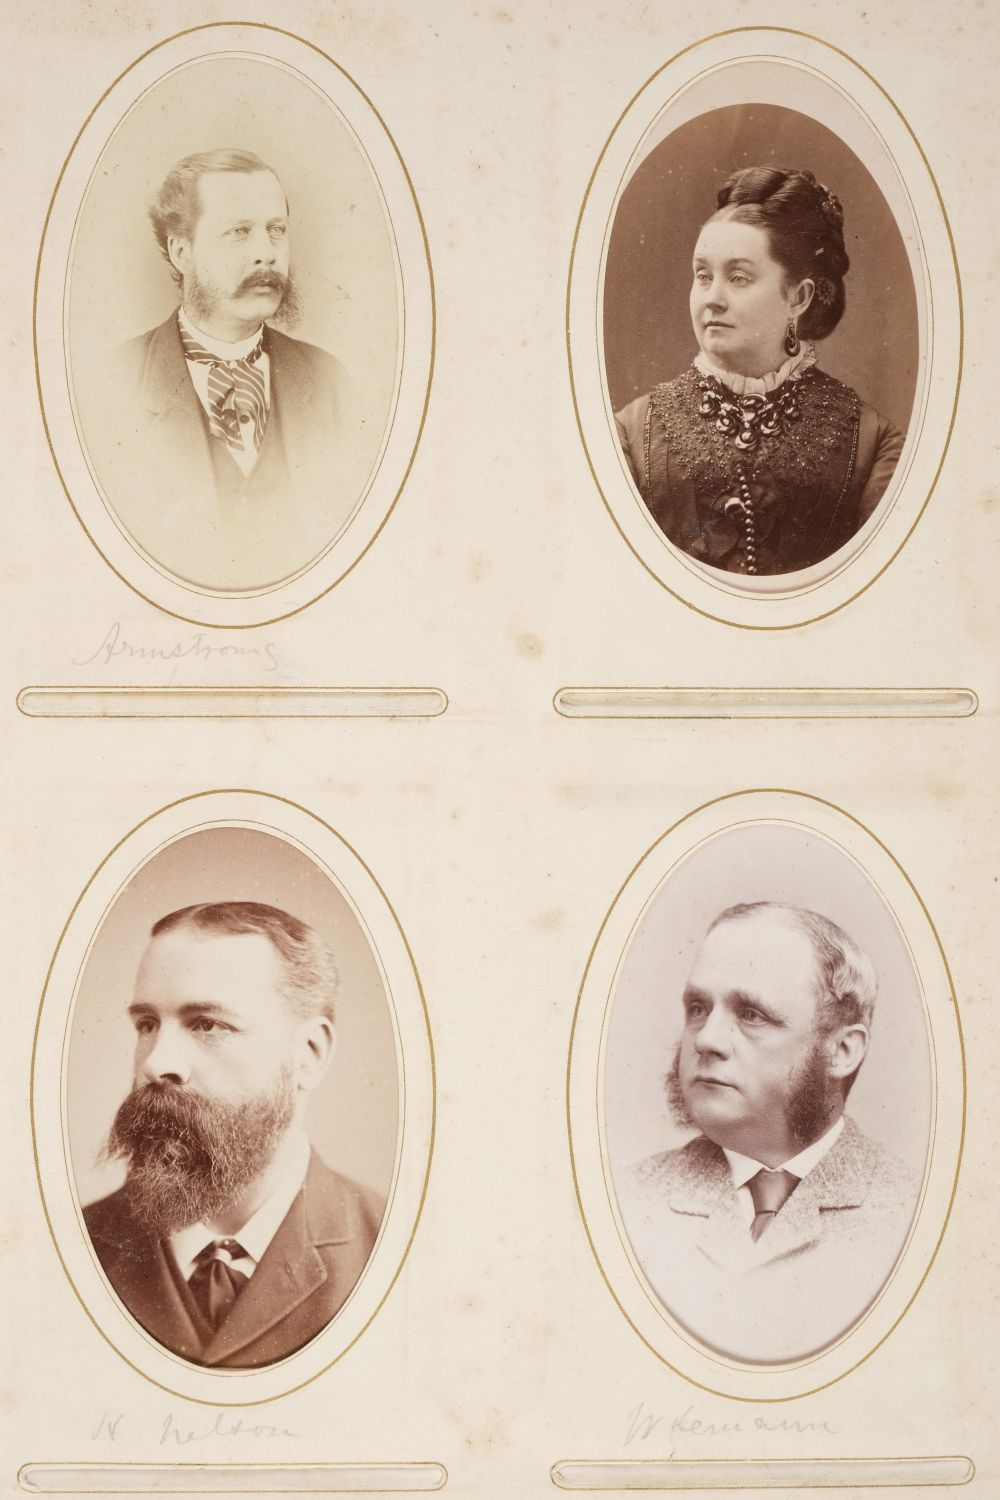 * Cartes de visite. A group of 3 albums of cartes de visite and cabinet cards - Image 21 of 26